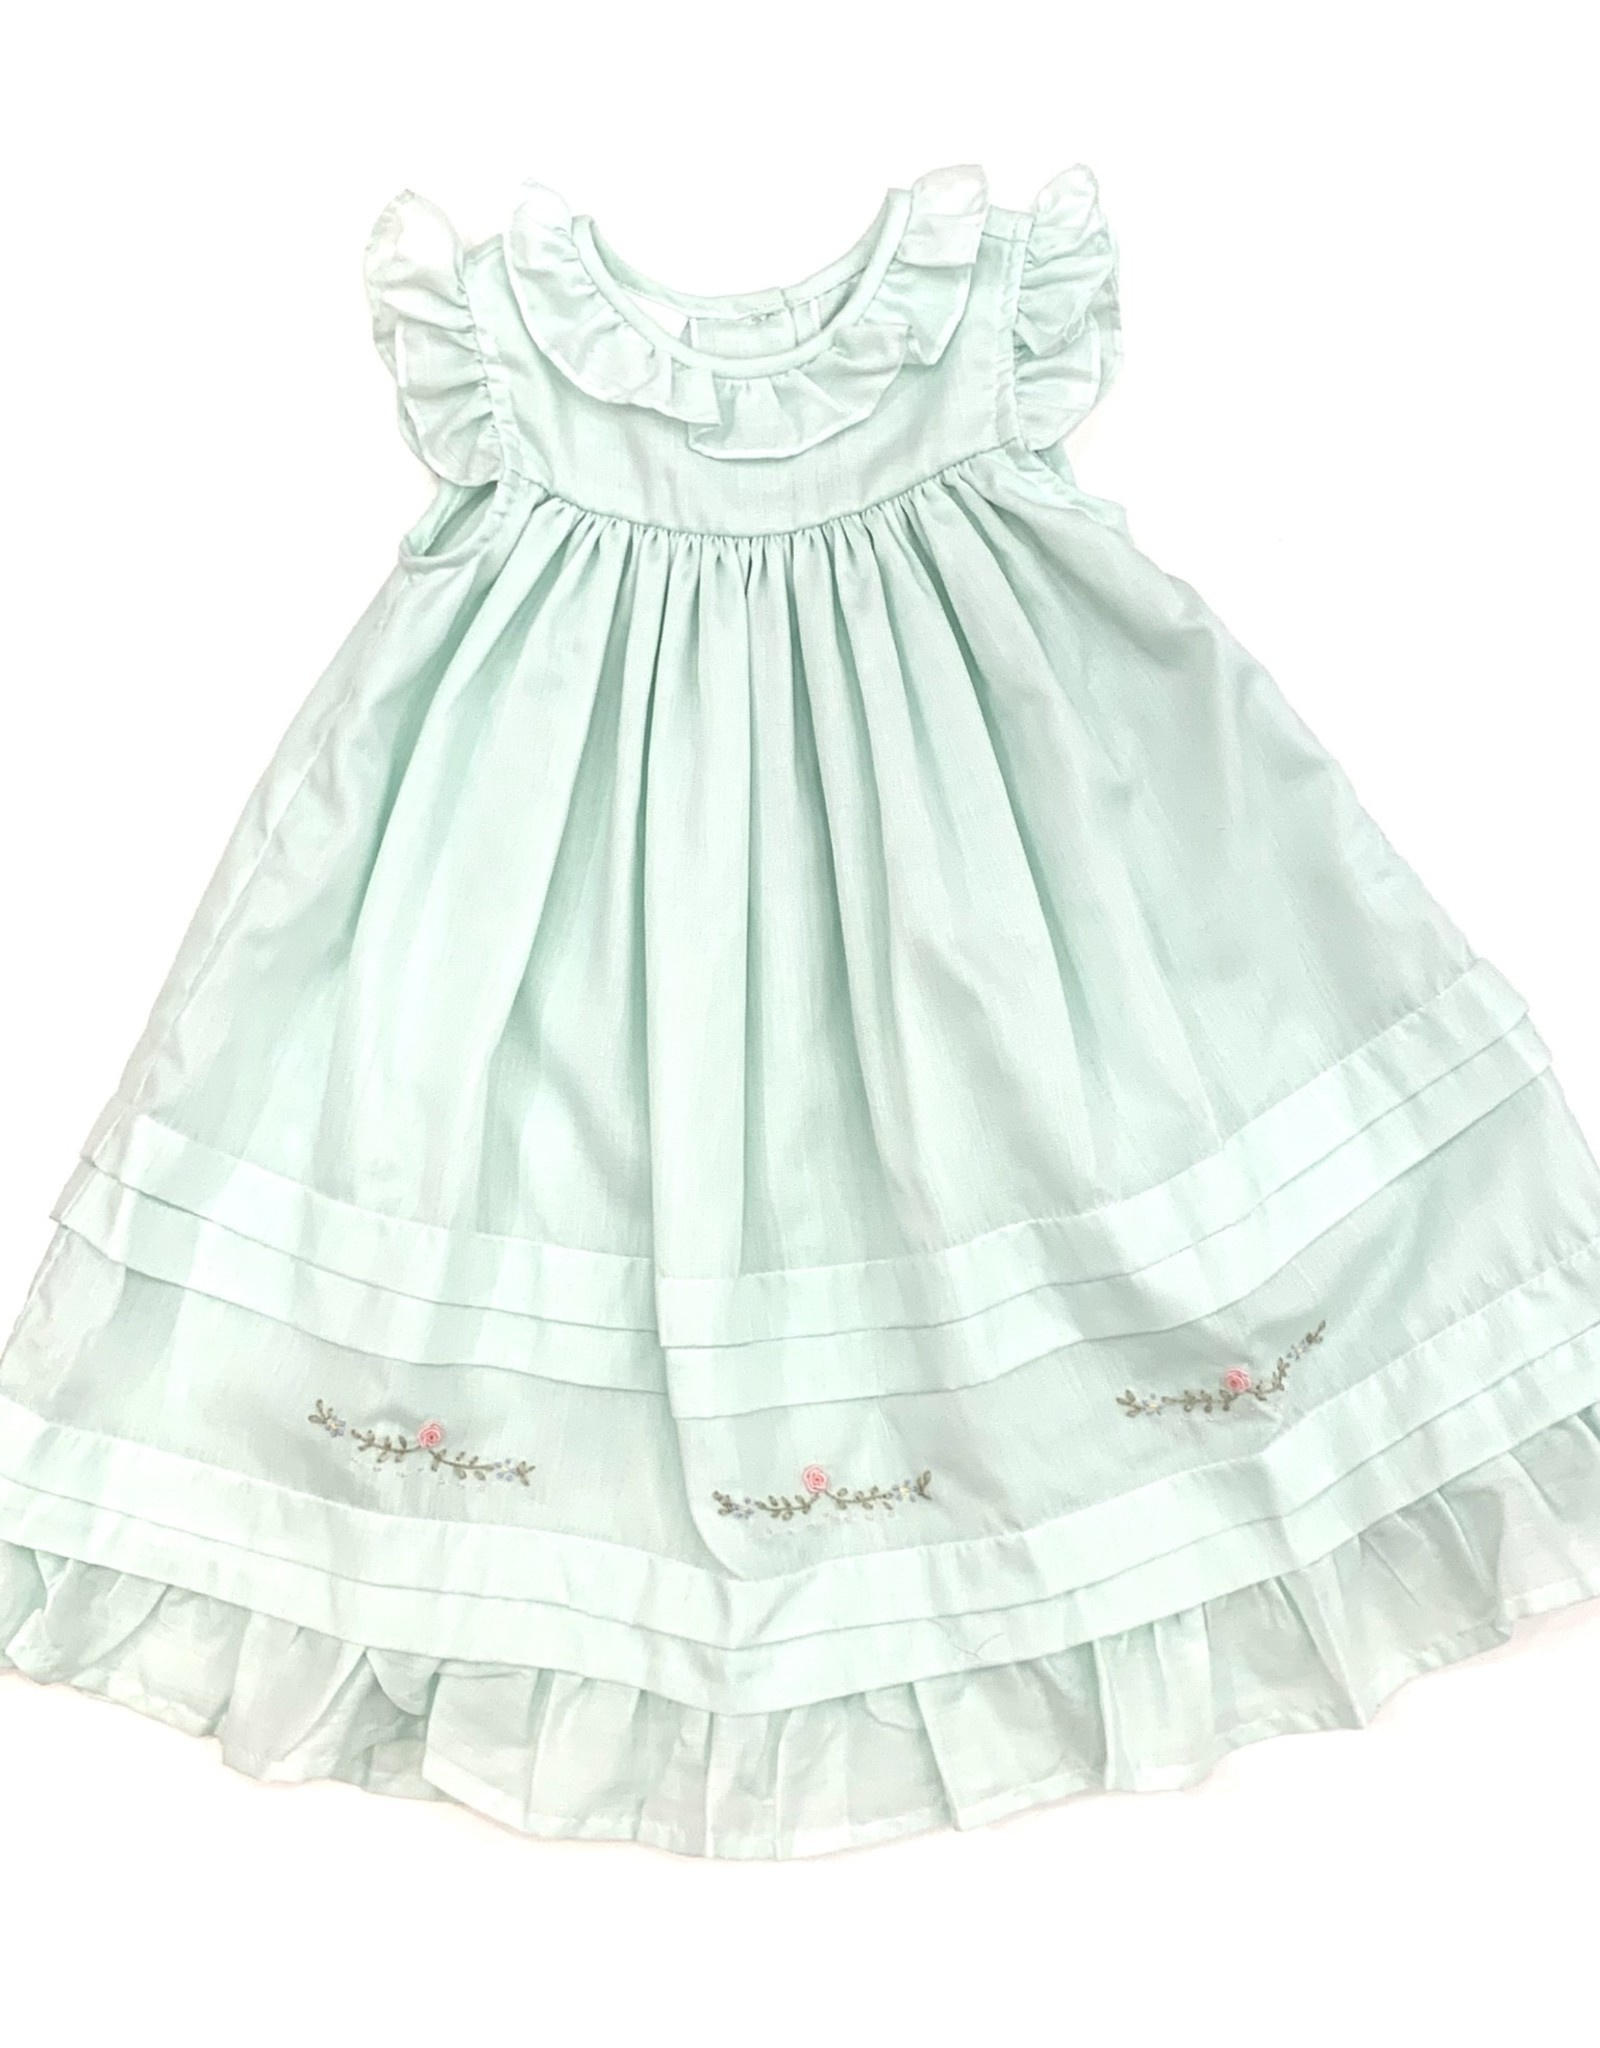 The Bailey Boys Mint Pin Tuck Dress